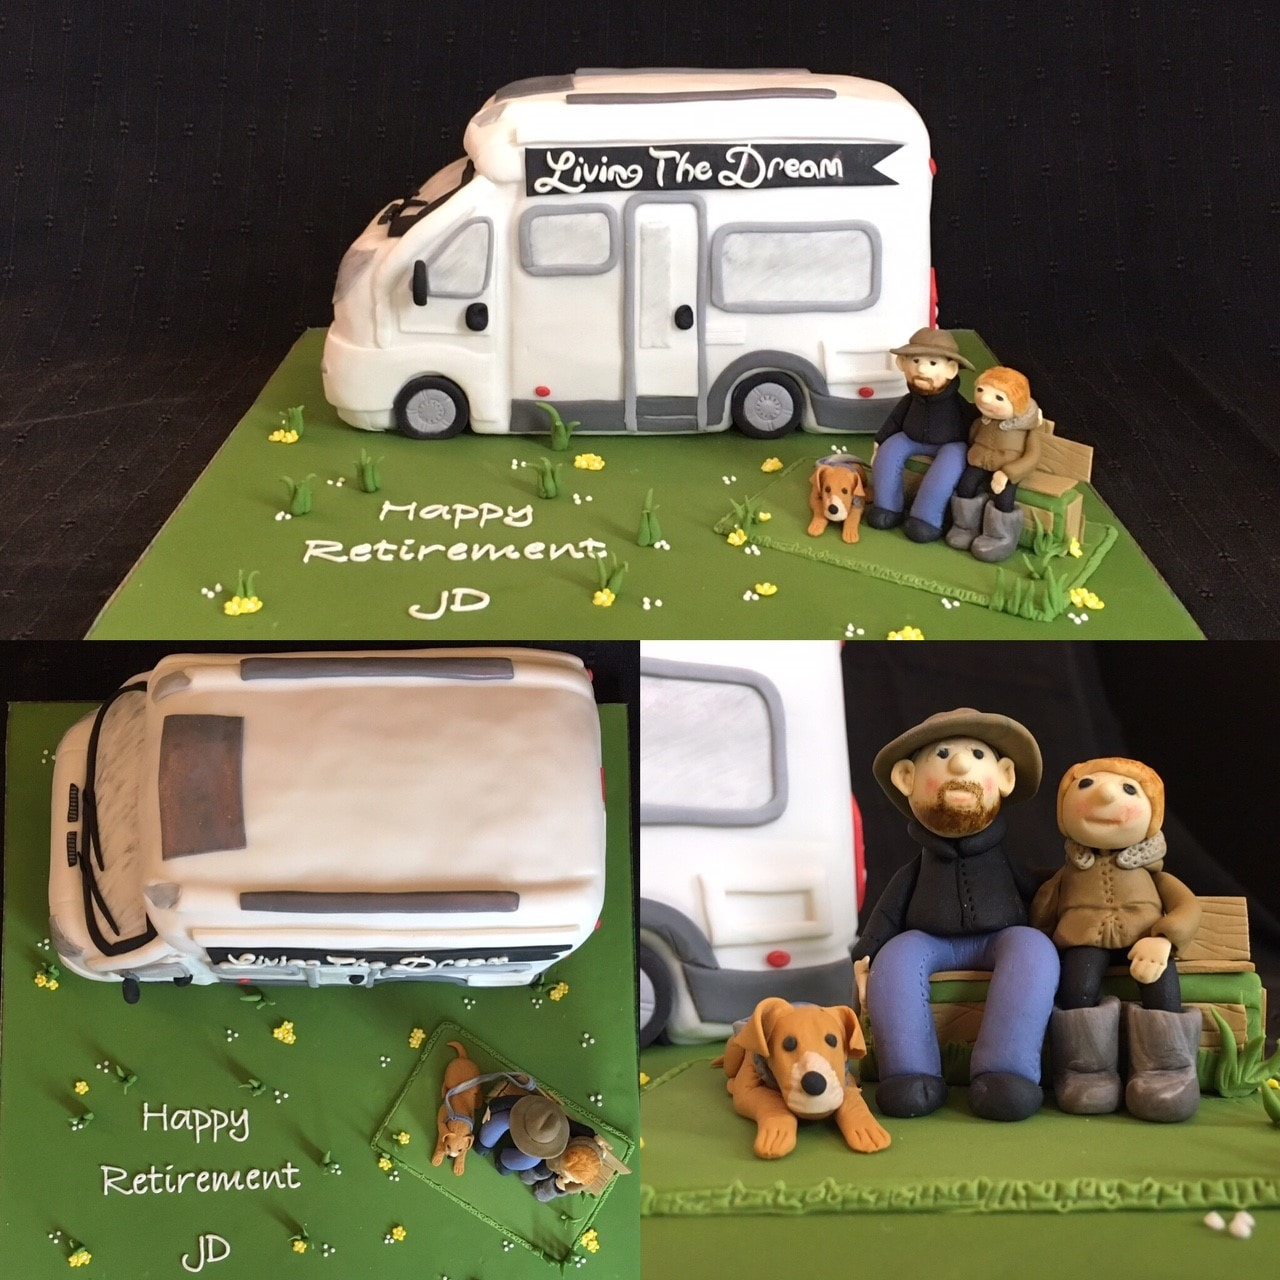 Retirement cake with campervan cake and 2 sugarcrafted figures with dog sitting next to it, with Happy retirement on the board